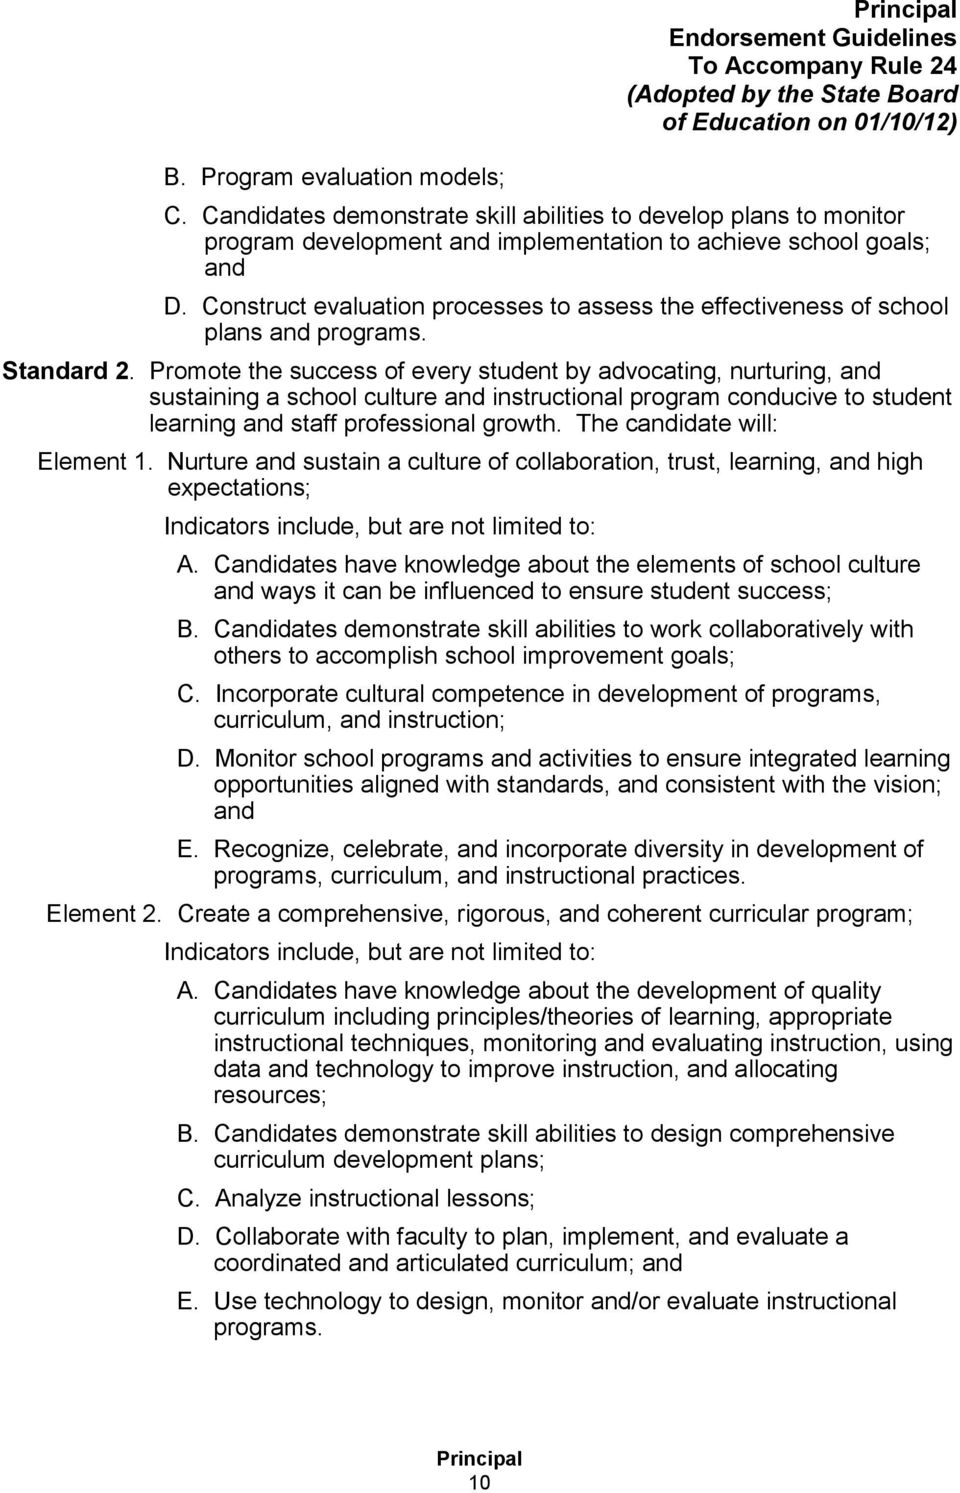 Construct evaluation processes to assess the effectiveness of school plans and programs. Standard 2.